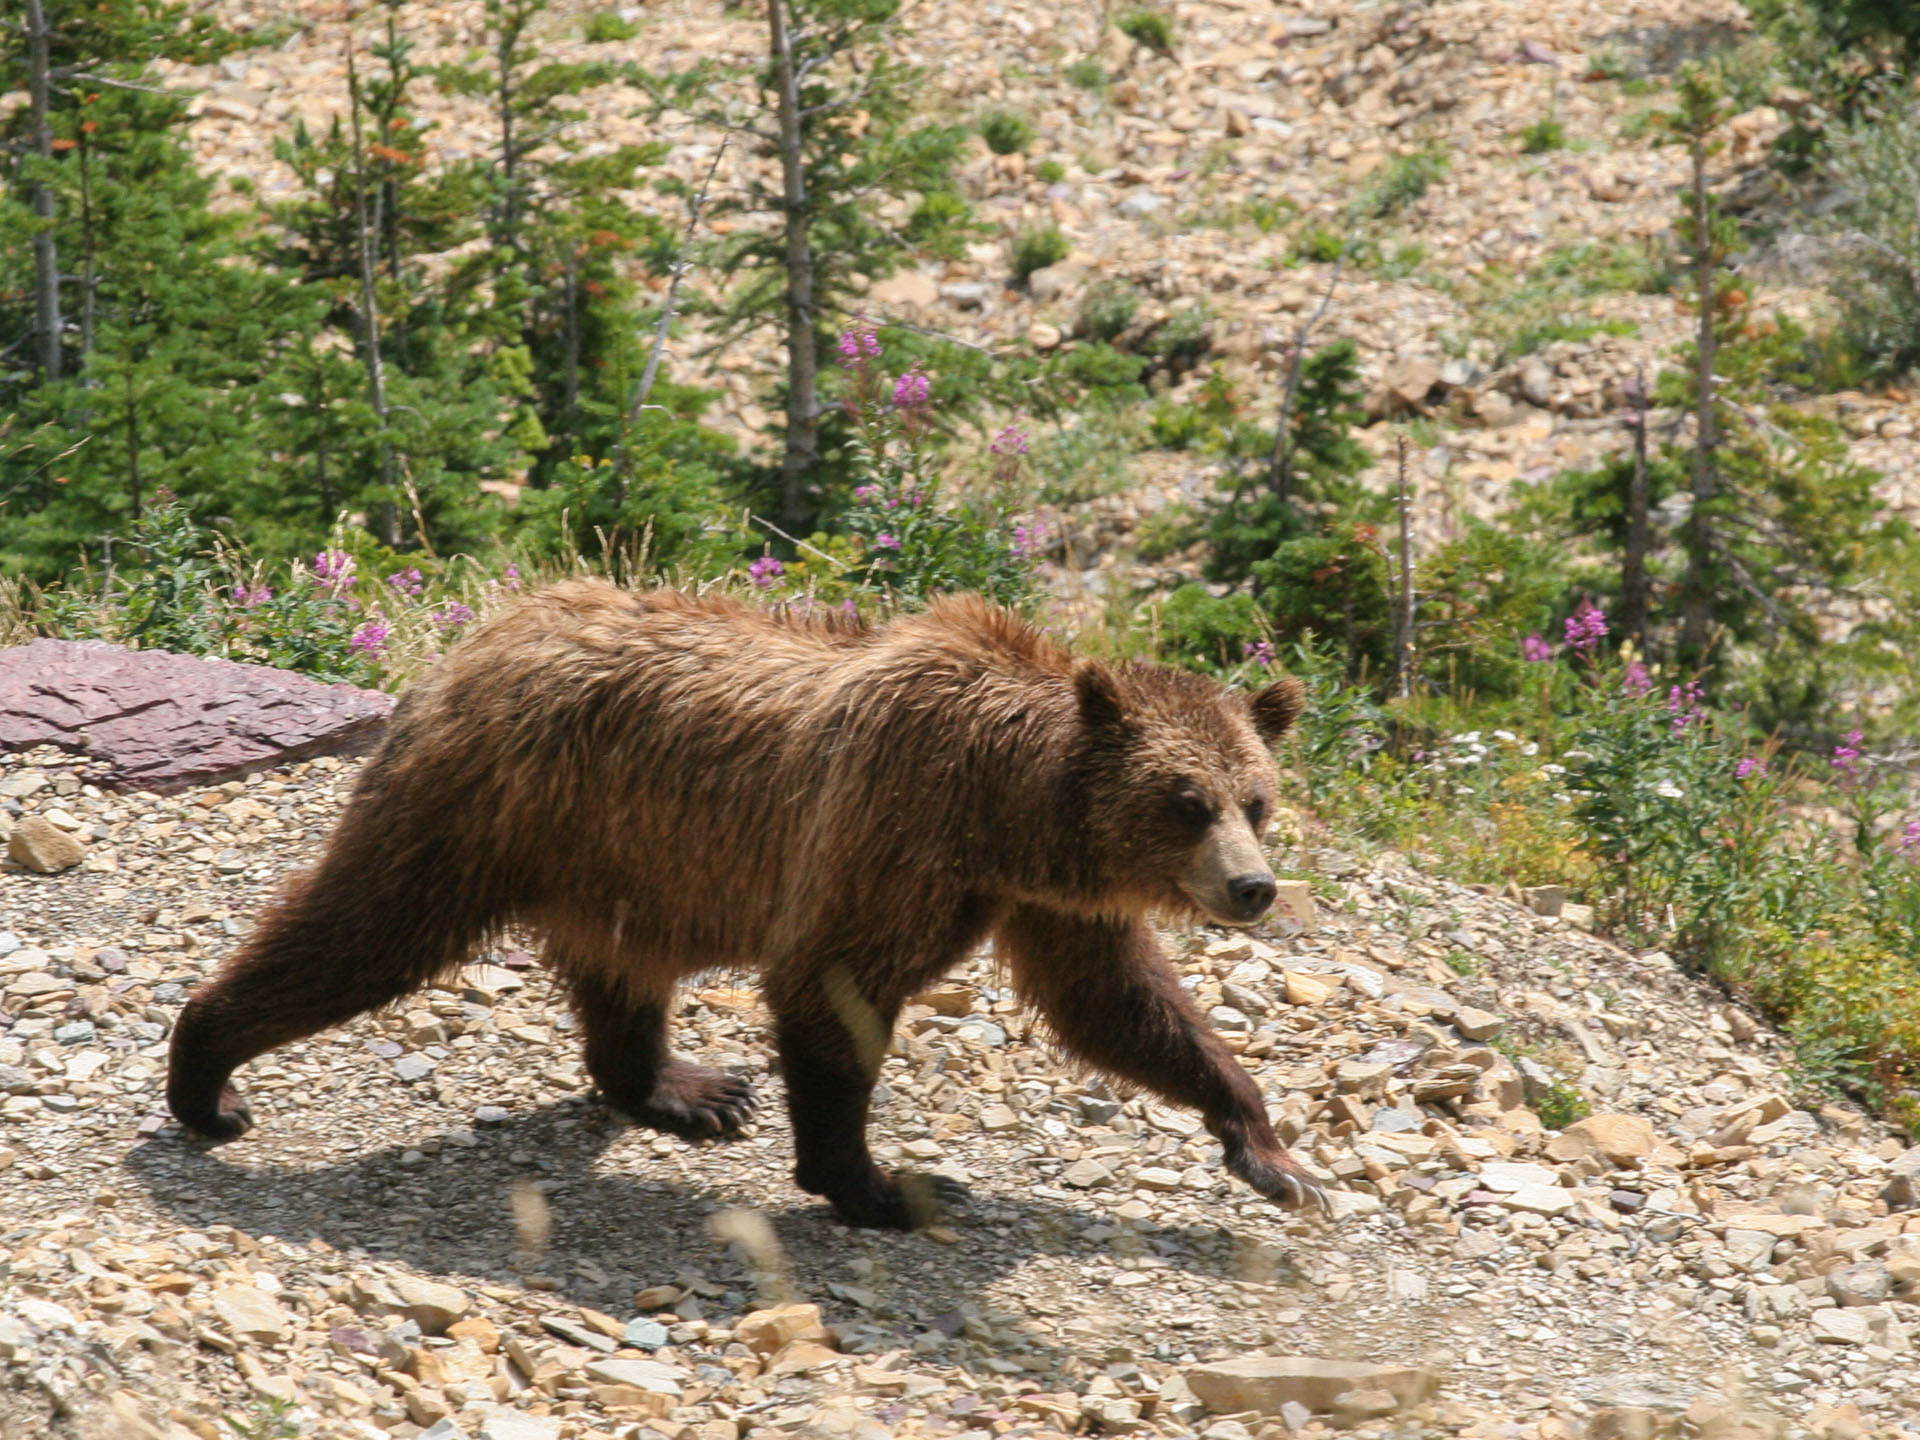 Glacier grizzly bear on hiking trail